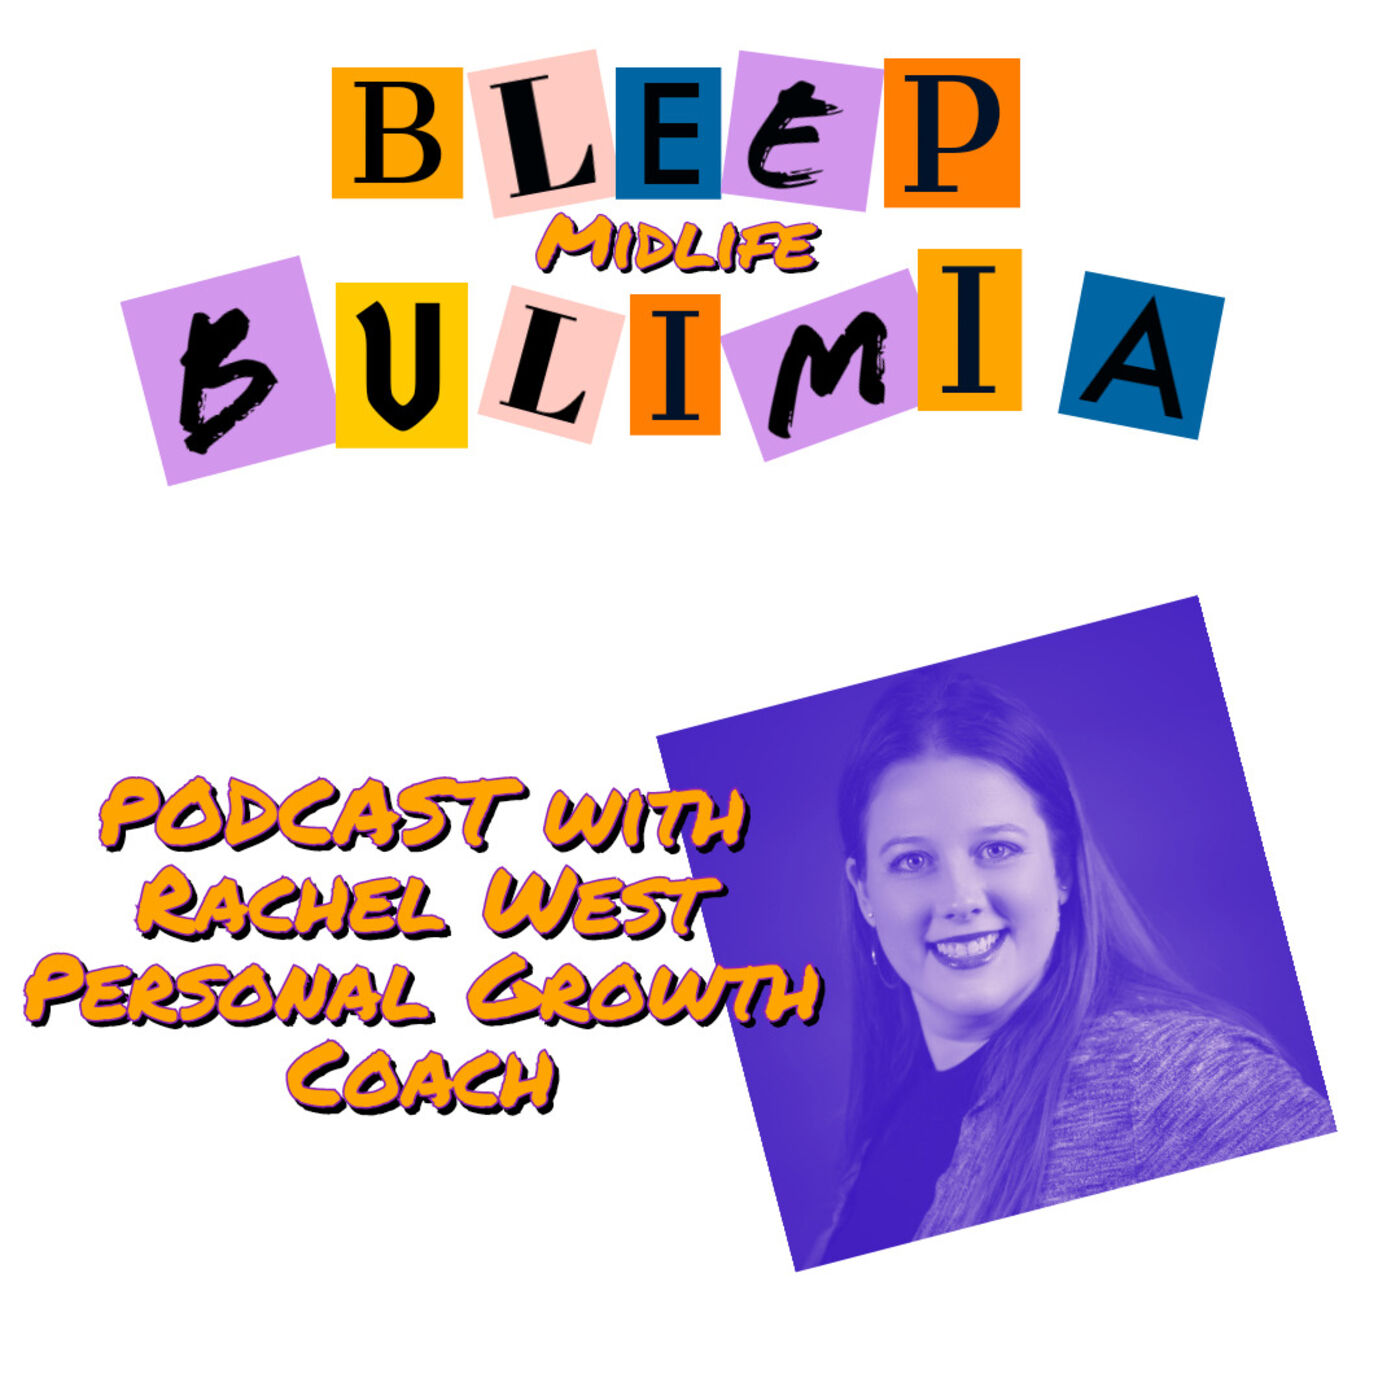 Bleep Bulimia Episode 55 with Rachel West Personal Growth Coach